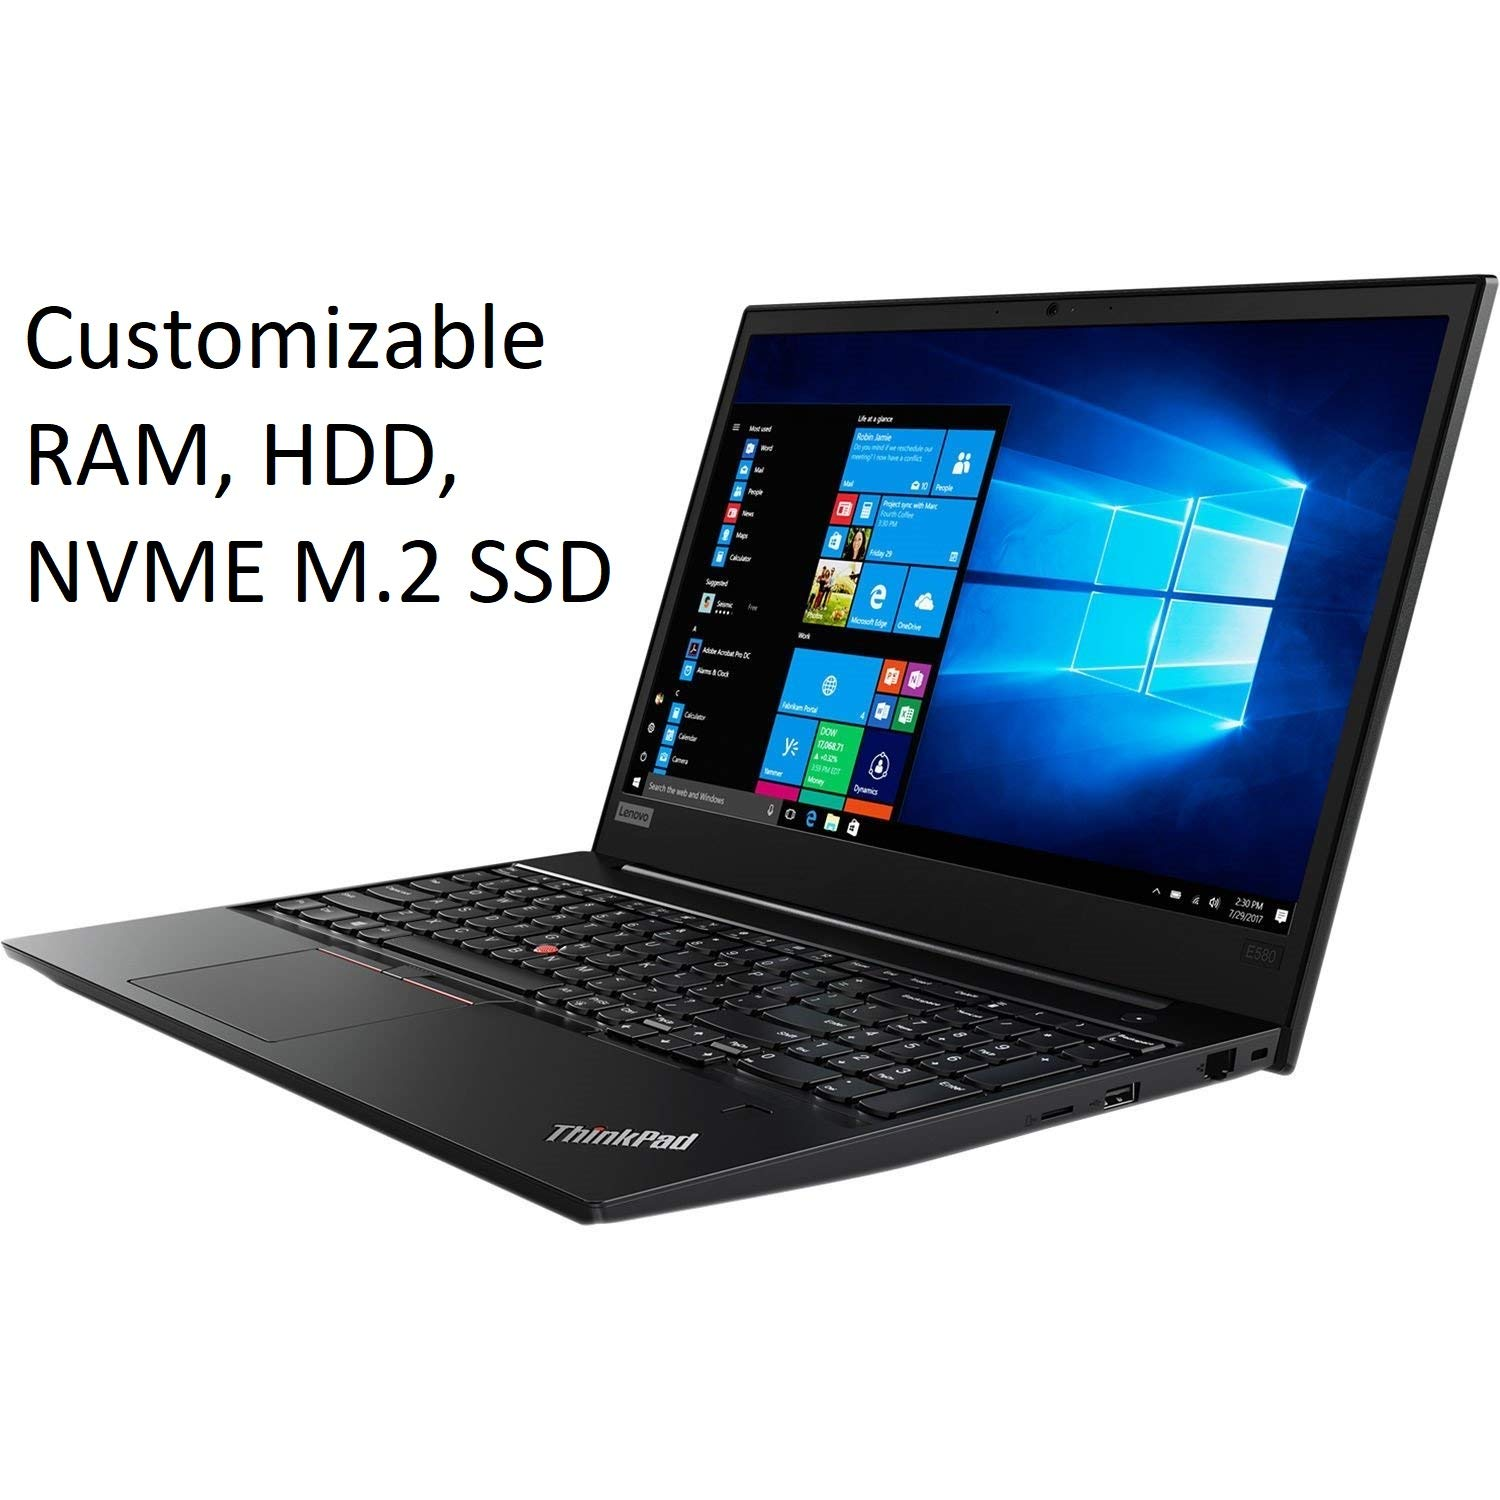 "Lenovo ThinkPad E580 15.6"" HD Business Laptop (Intel Core i5-7200U, Fingerprint, USB Type-C, WiFi AC, Webcam, Windows 10 Pro) - Choose 8GB 16GB 32GB DDR4 RAM, 256GB 512GB 1TB NVMe PCIe M.2 SSD or HDD"